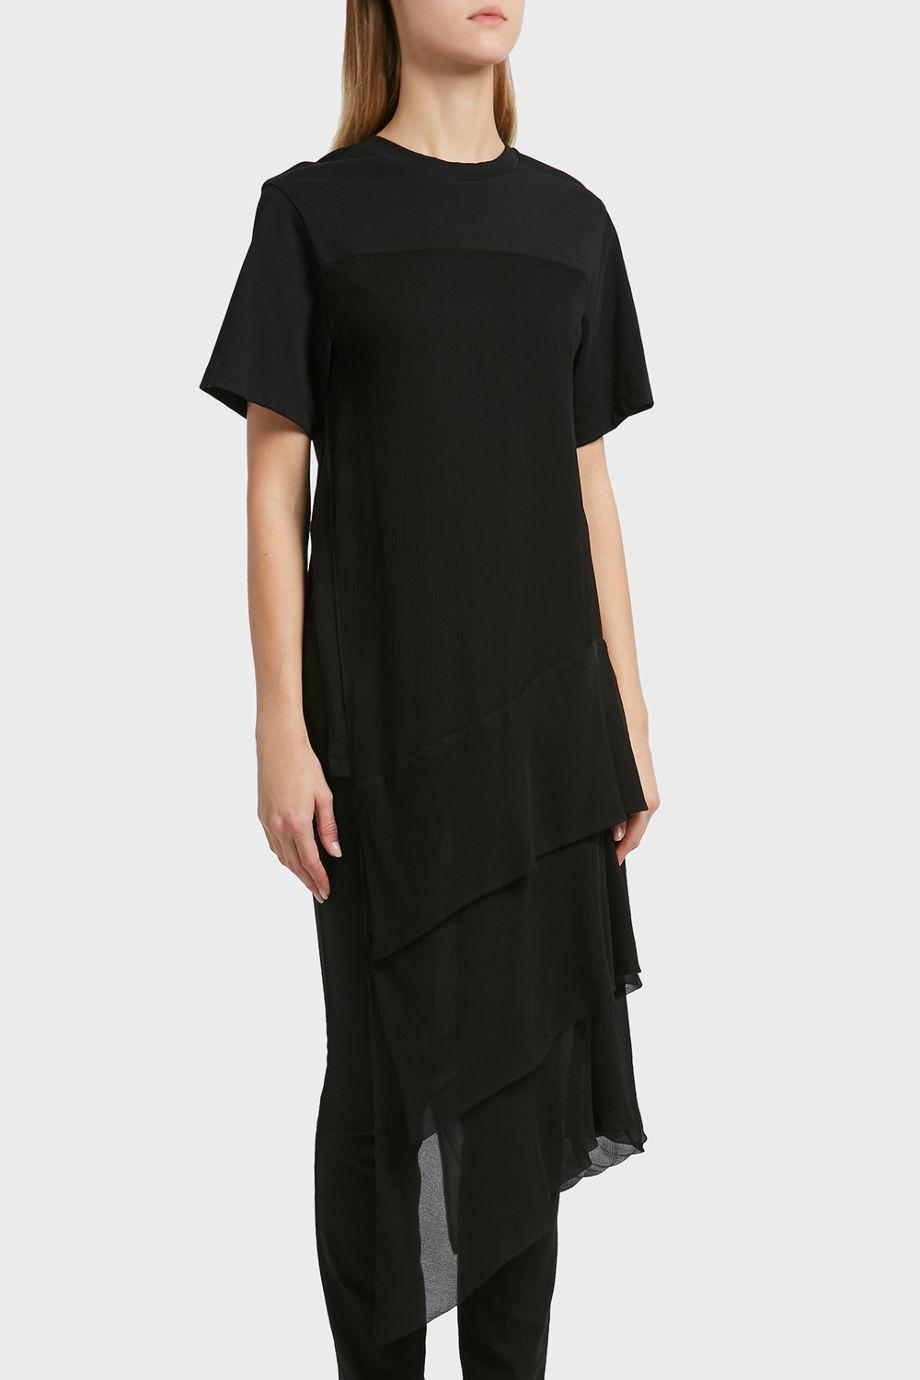 3.1 Phillip Lim  Tiered Cotton And Silk T-Shirt